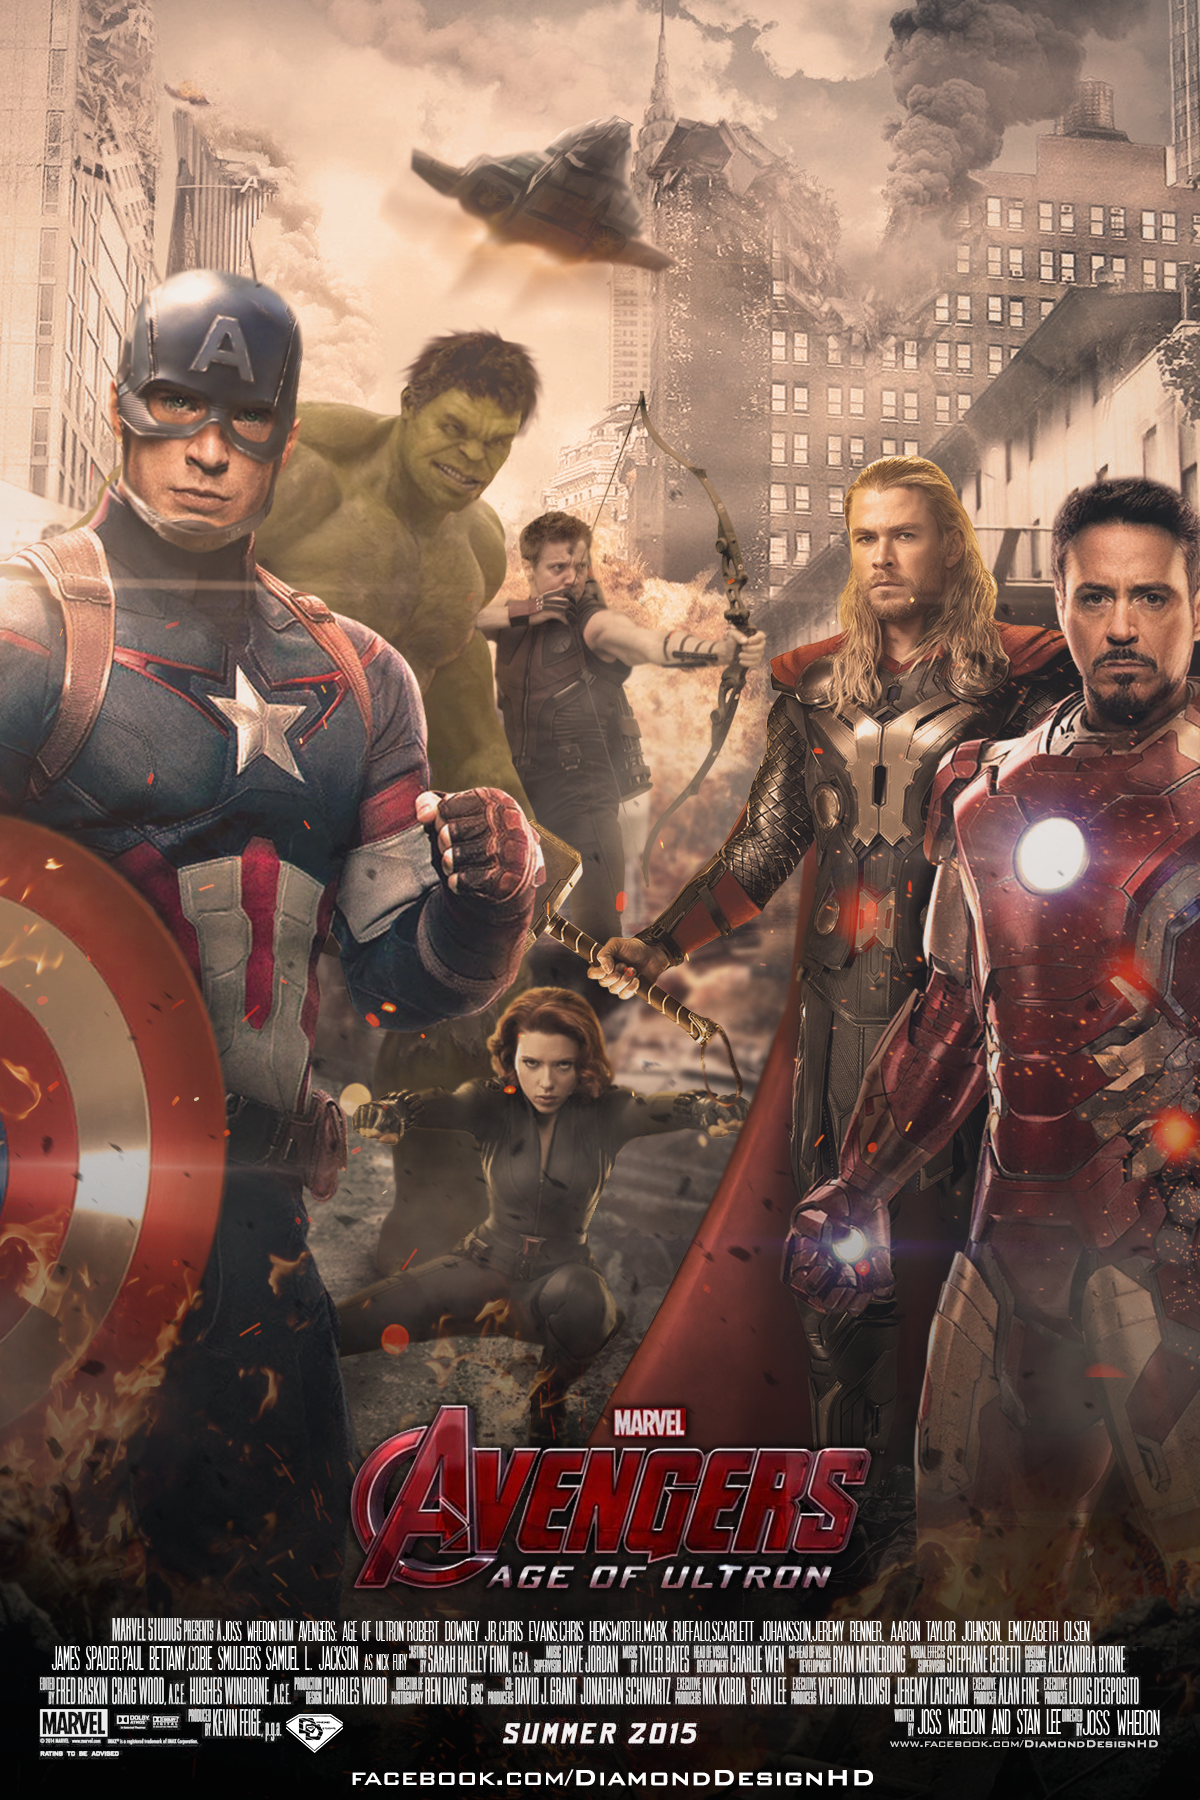 Most Inspiring Wallpaper Marvel Avengers Age Ultron - Avengers-Age-of-Ultron-FAN-MADE-Poster-ultron-37362475-1200-1800  Trends_38549.png